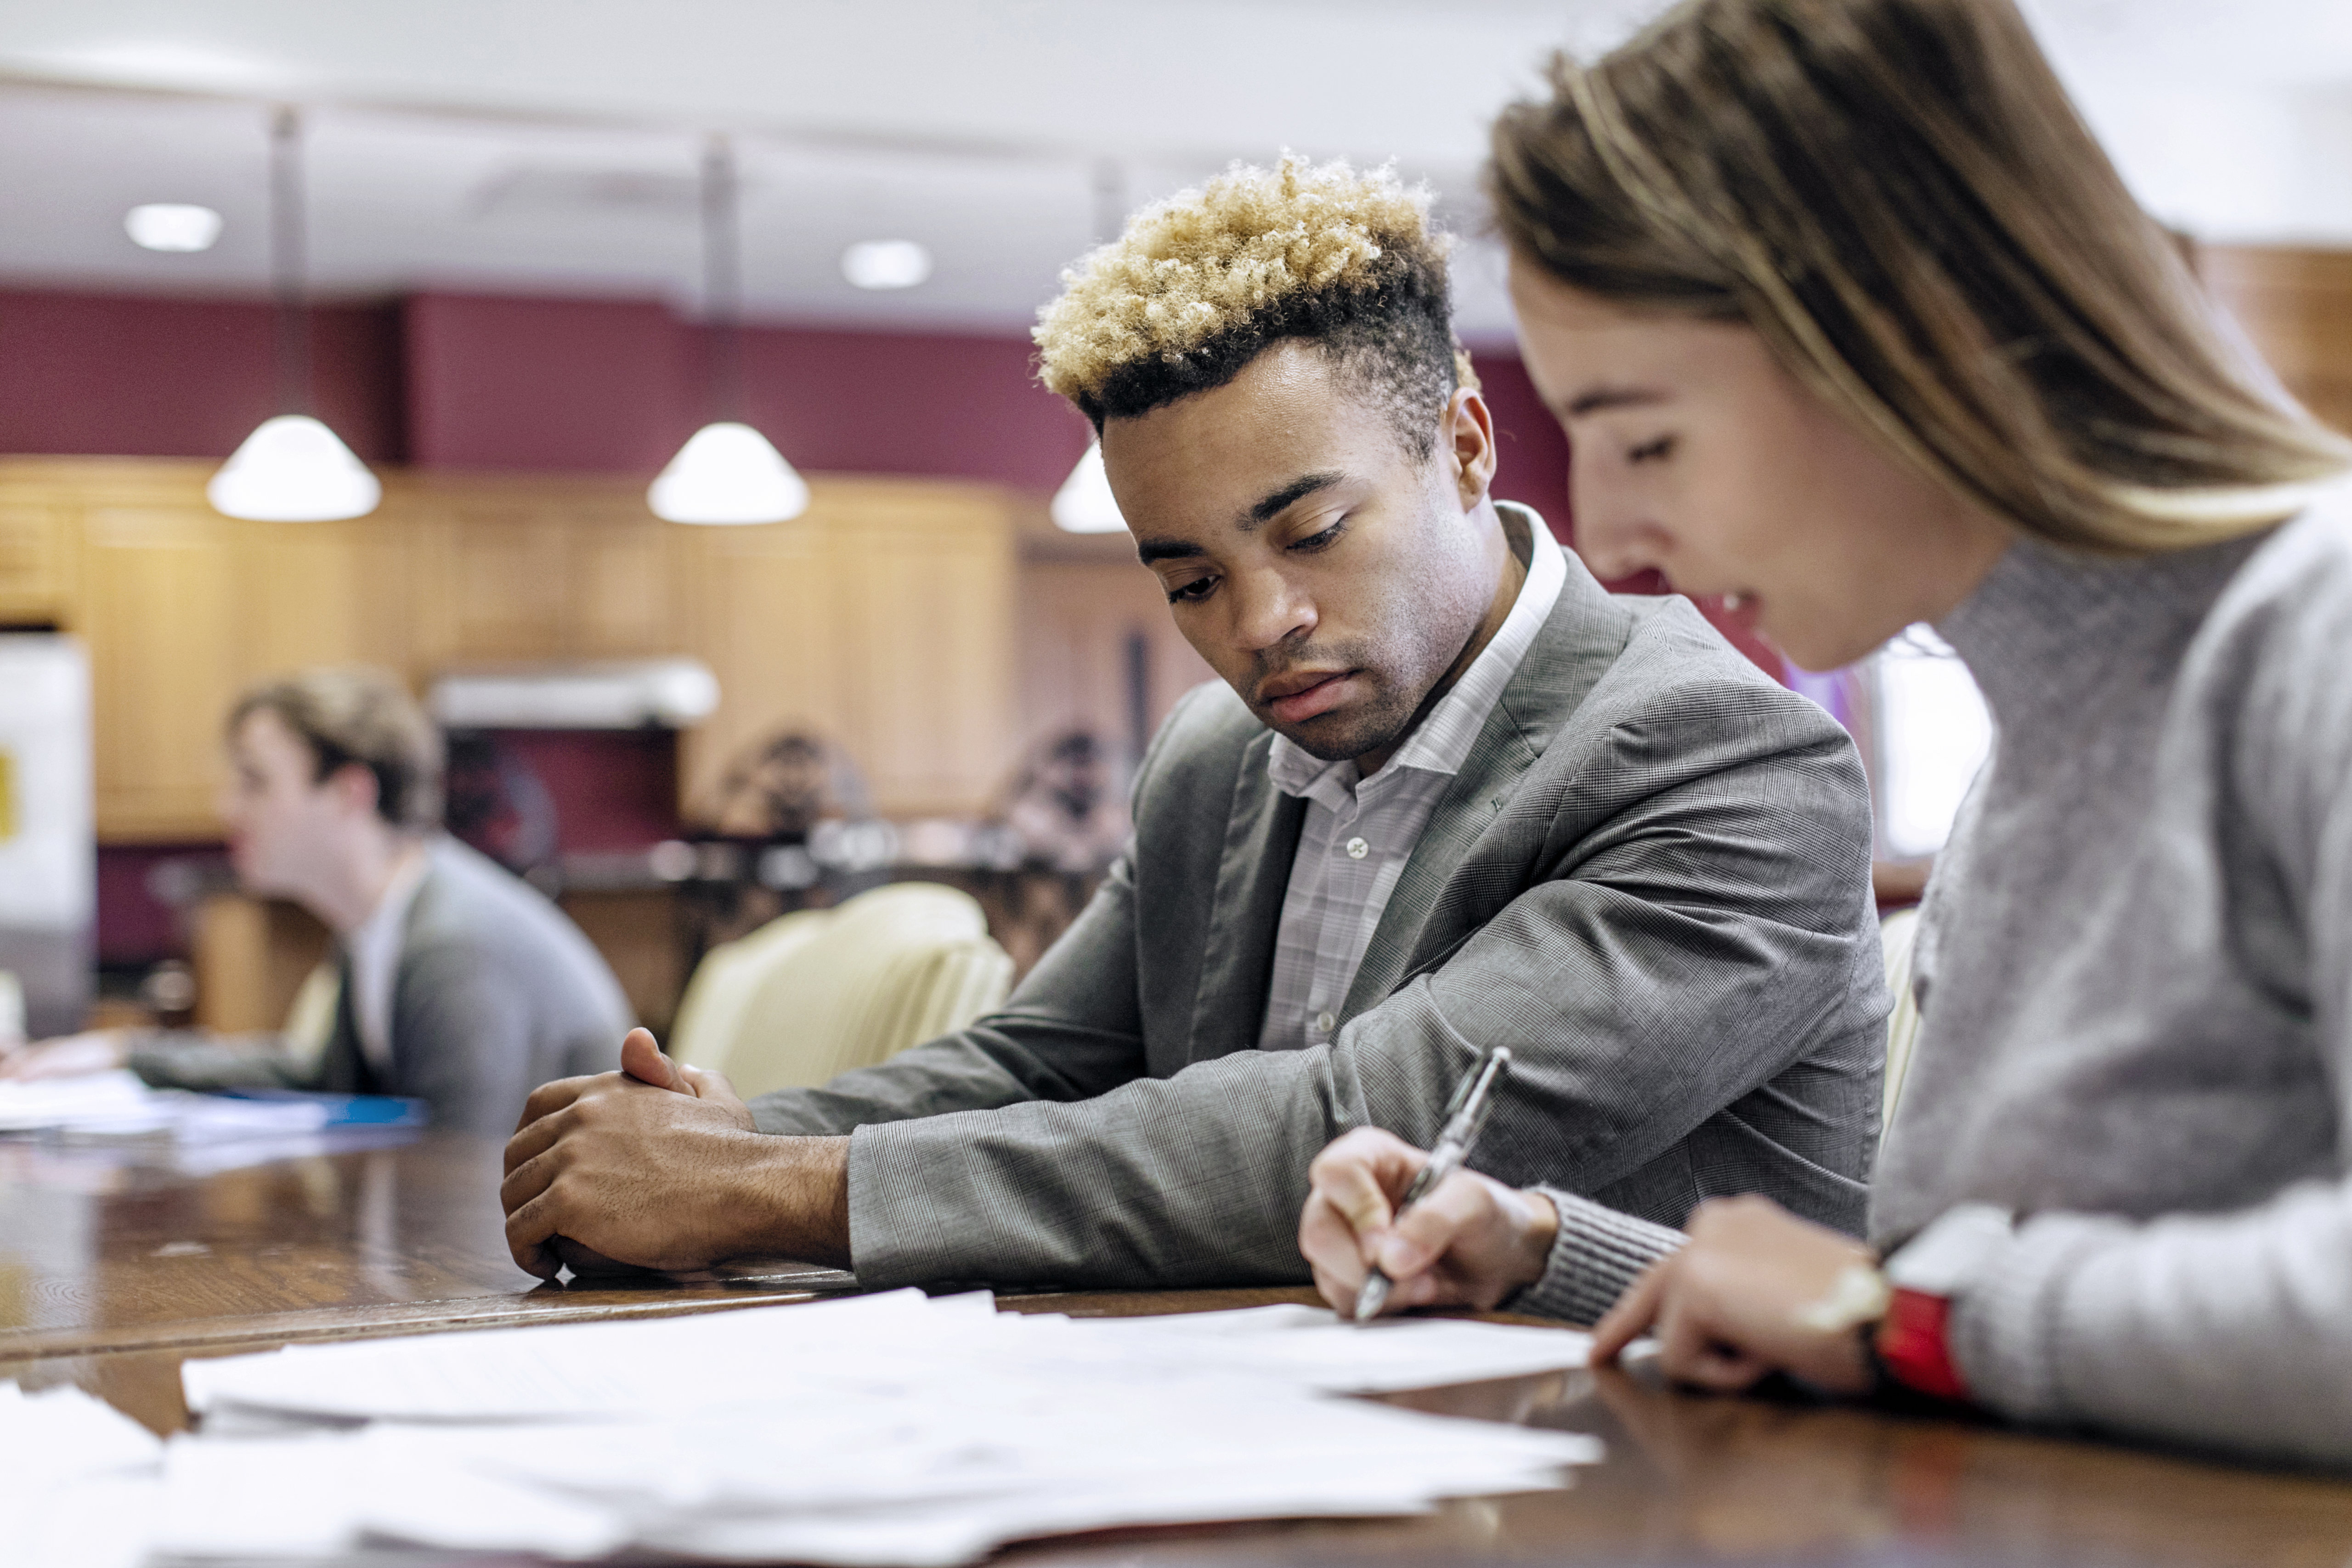 a male and female student look over some papers